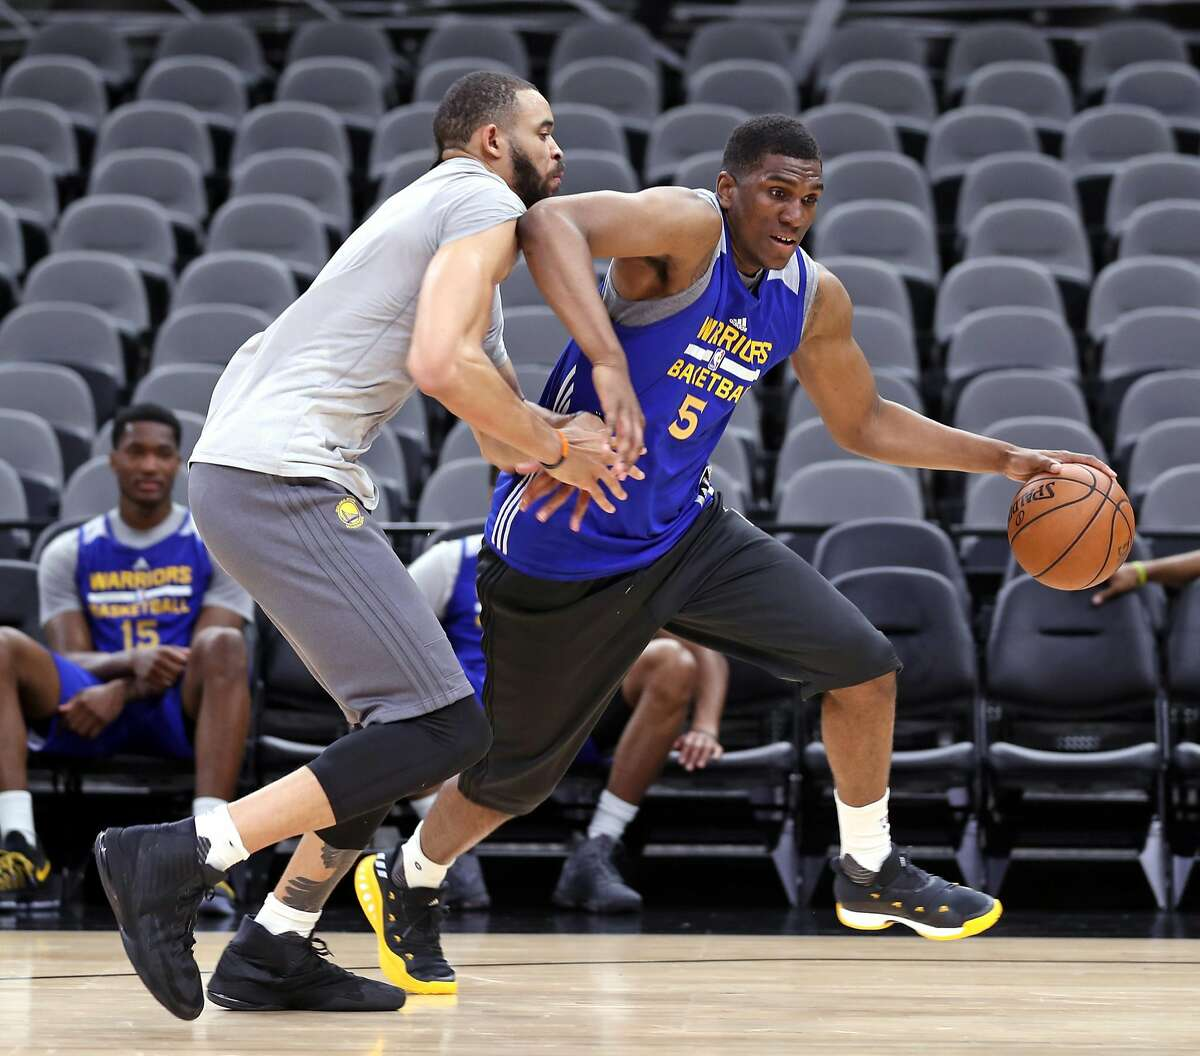 Golden State Warriors' Kevon Looney and JaVale McGee after practice during NBA Western Conference Finals at AT&T Center in San Antonio, Texas, on Sunday, May 21, 2017.